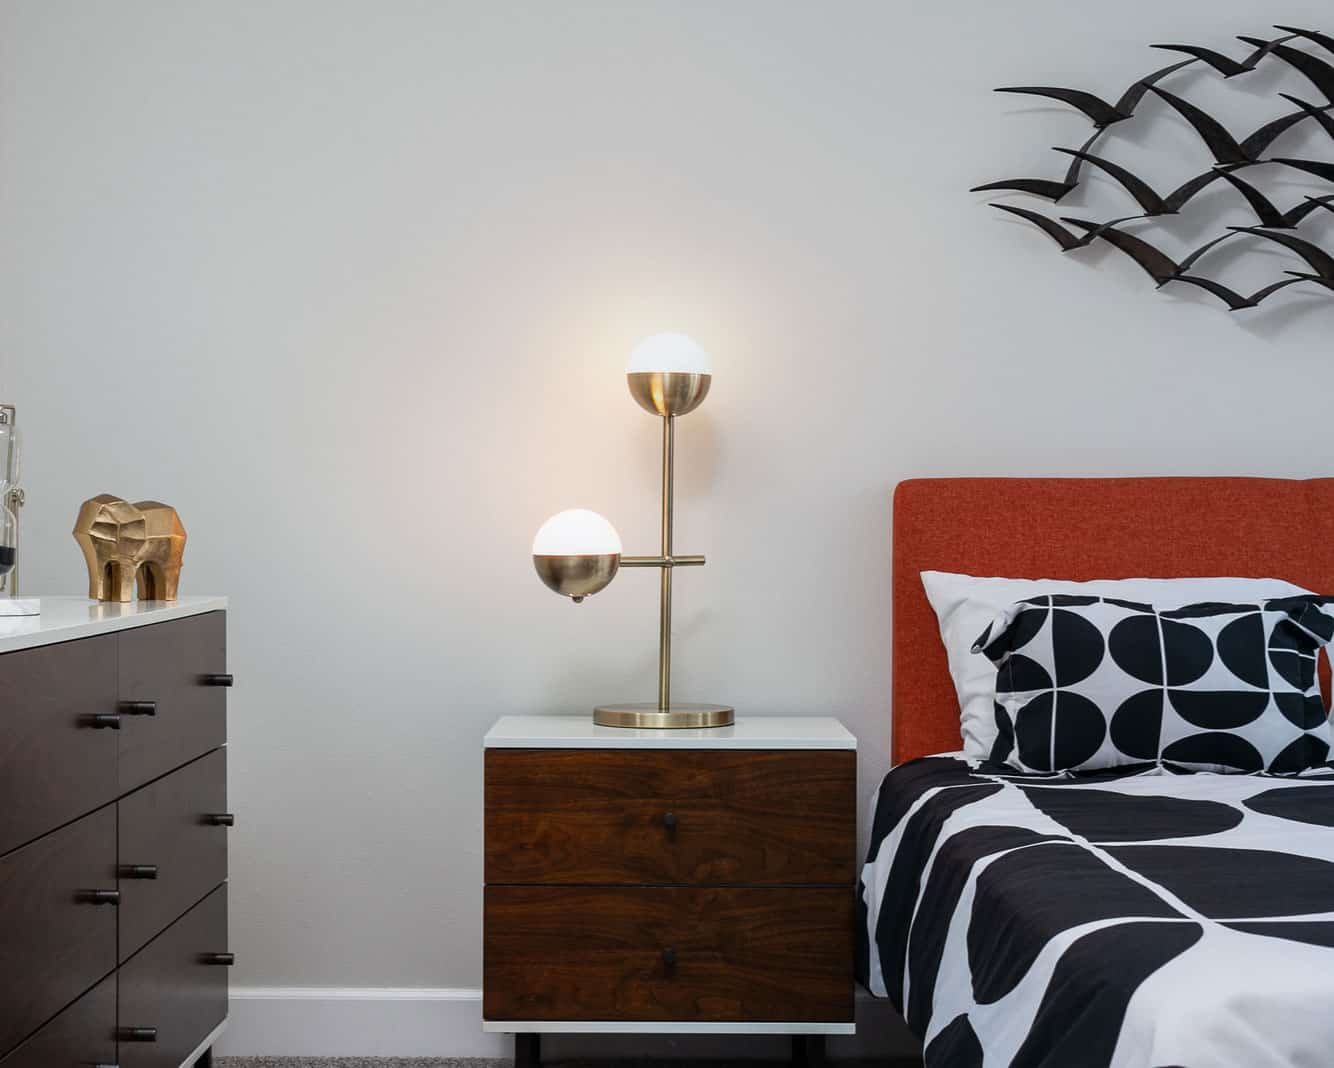 Bedside table with lamp in between cabinet and bed